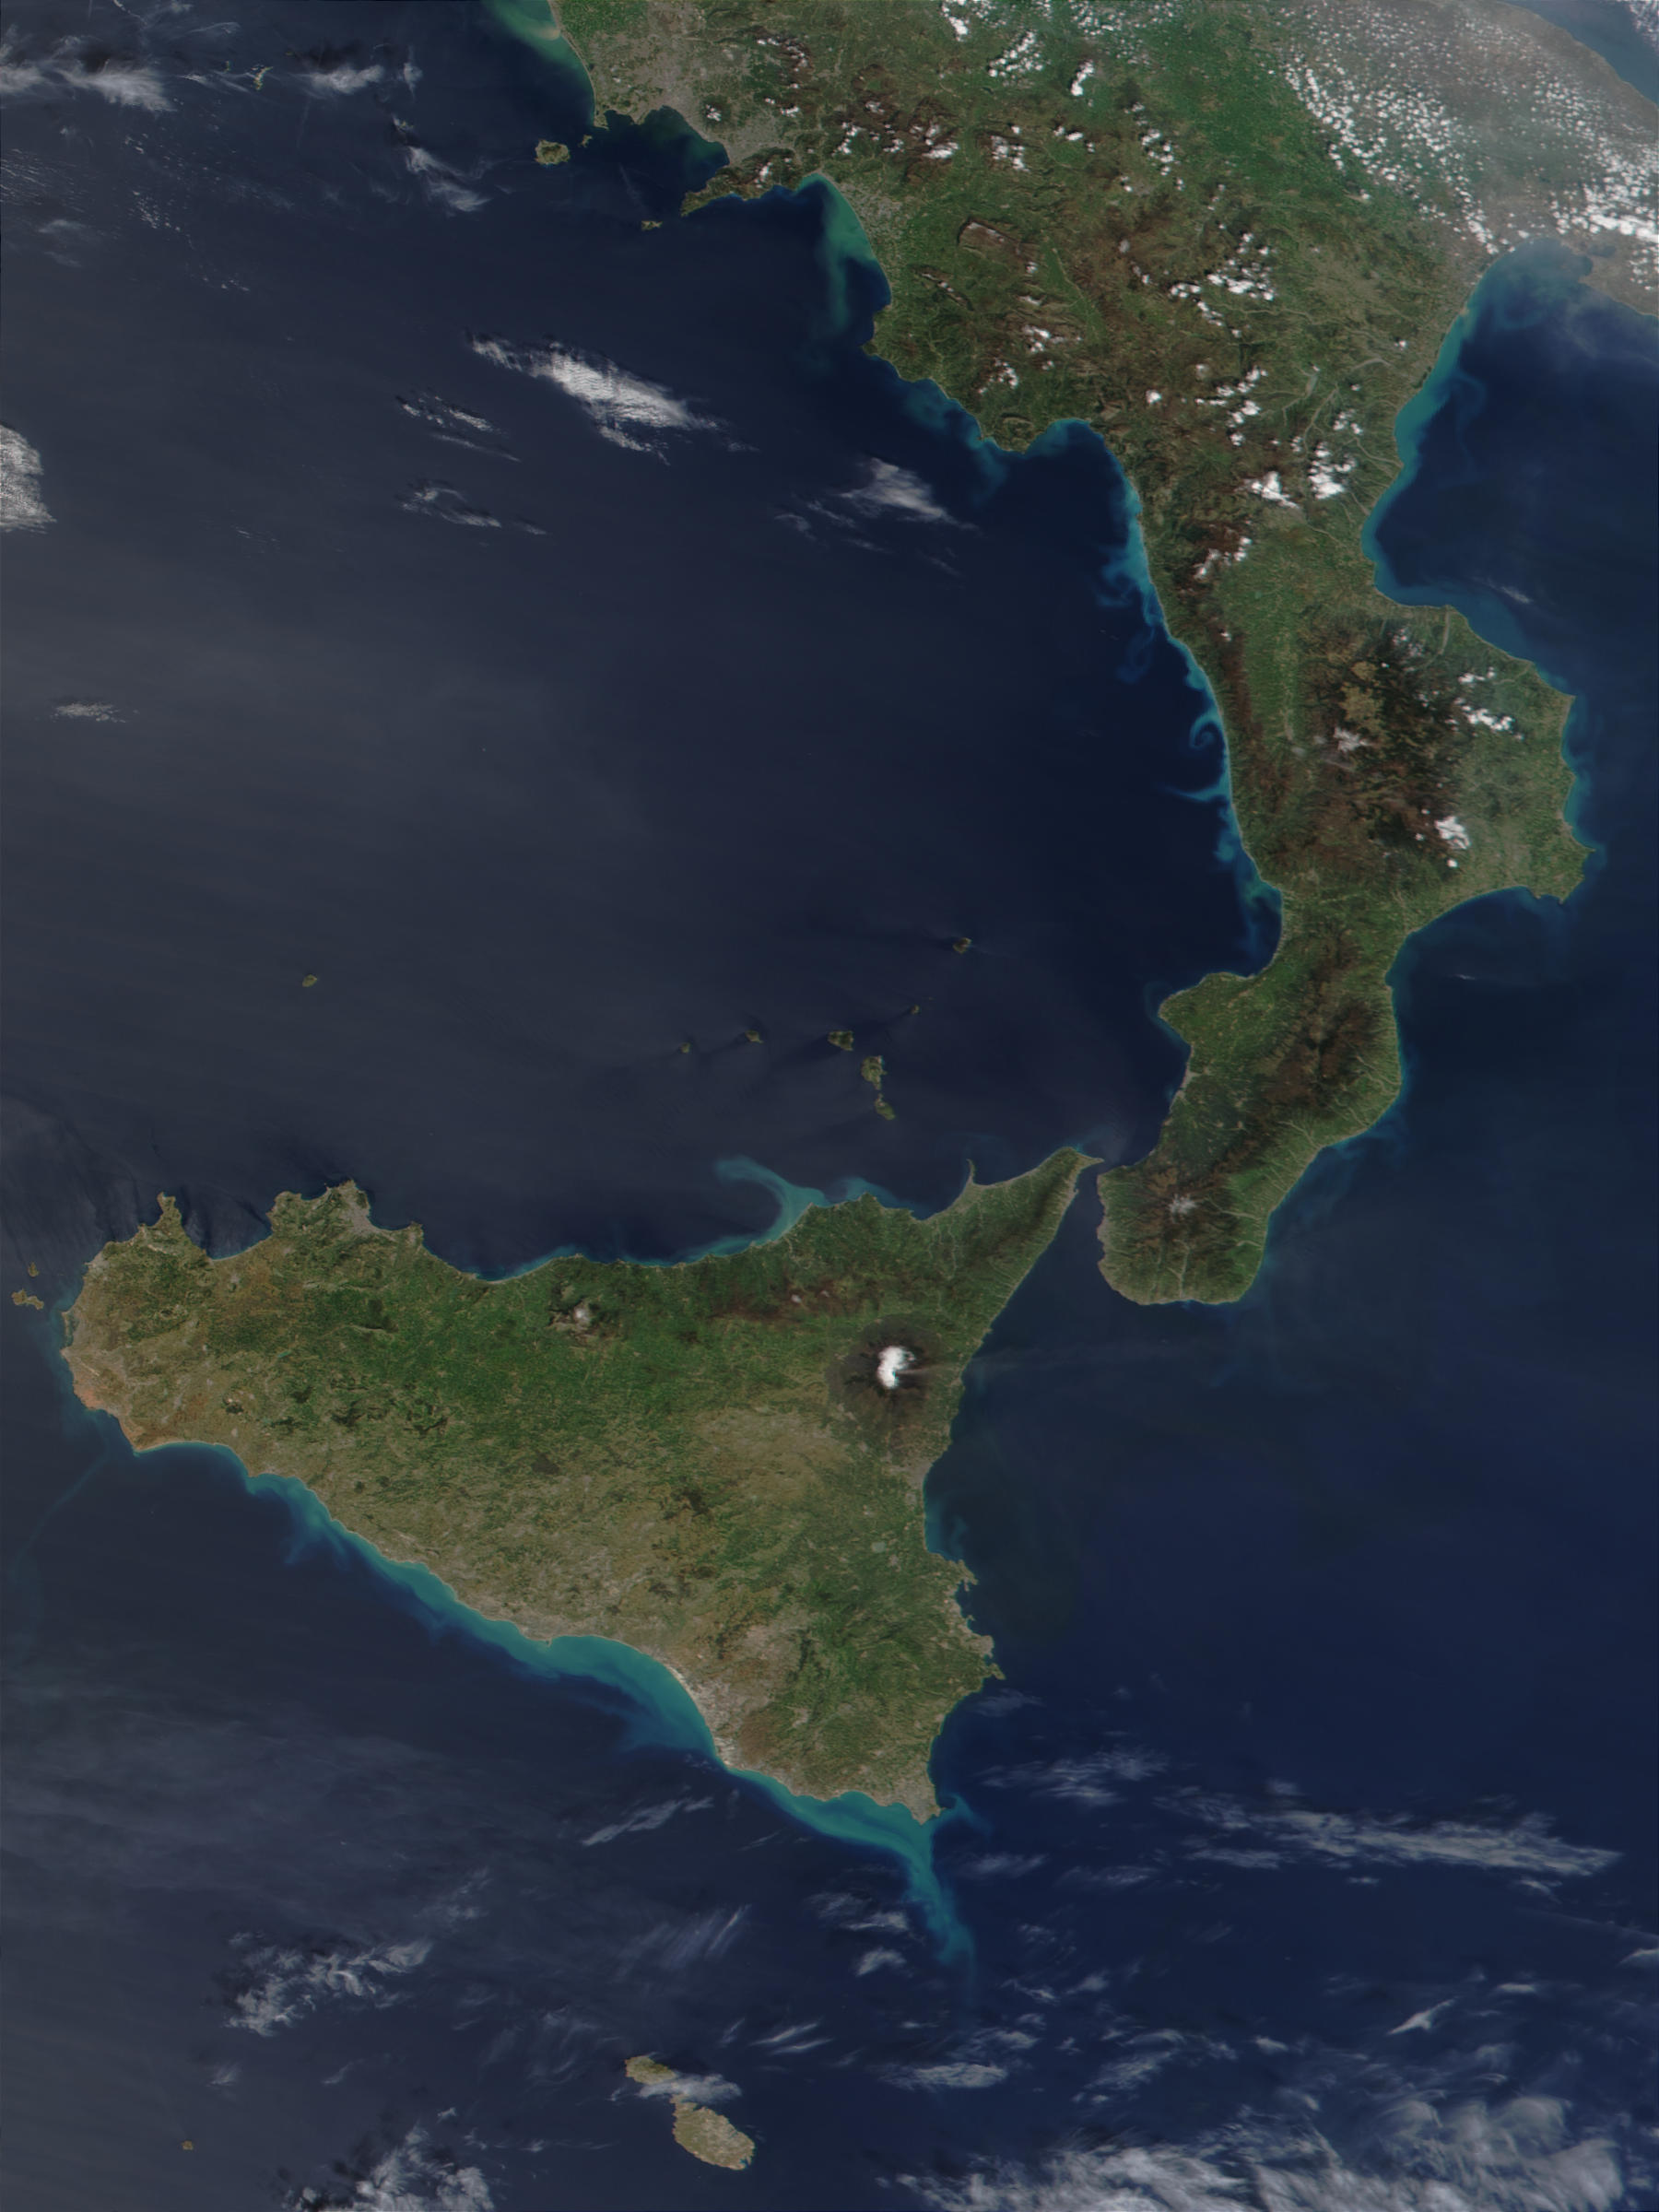 Smoke and Sediments in Sicily